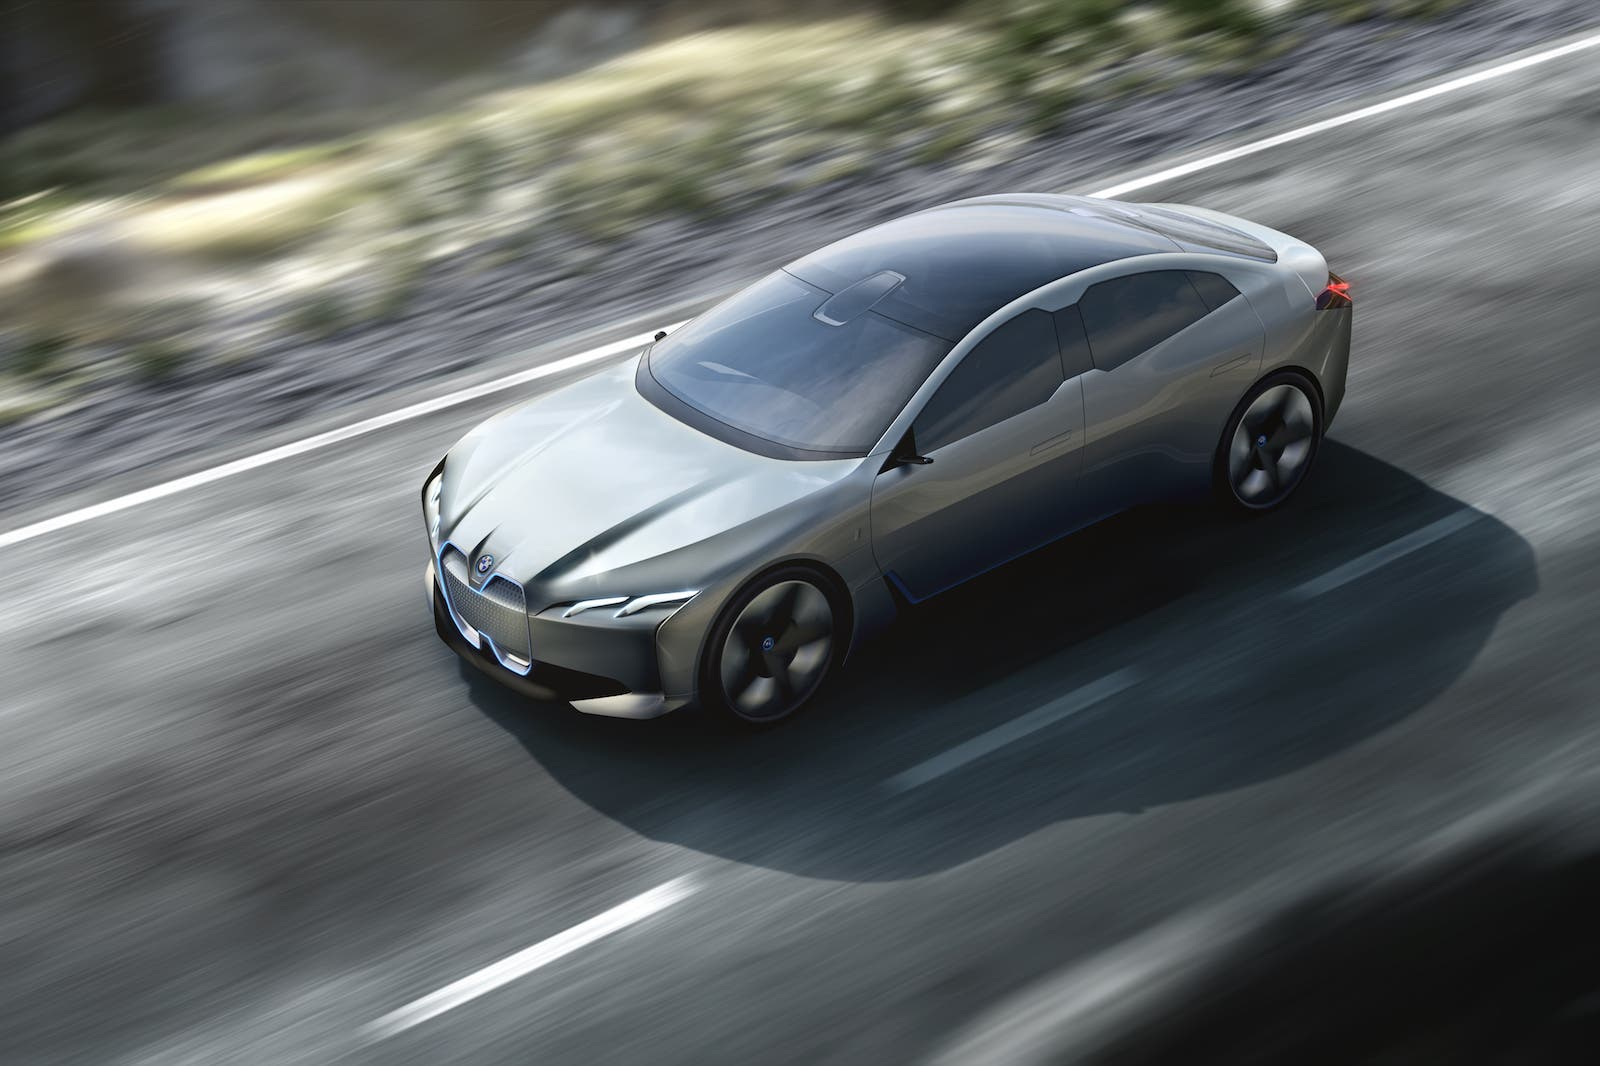 BMW iVision concept